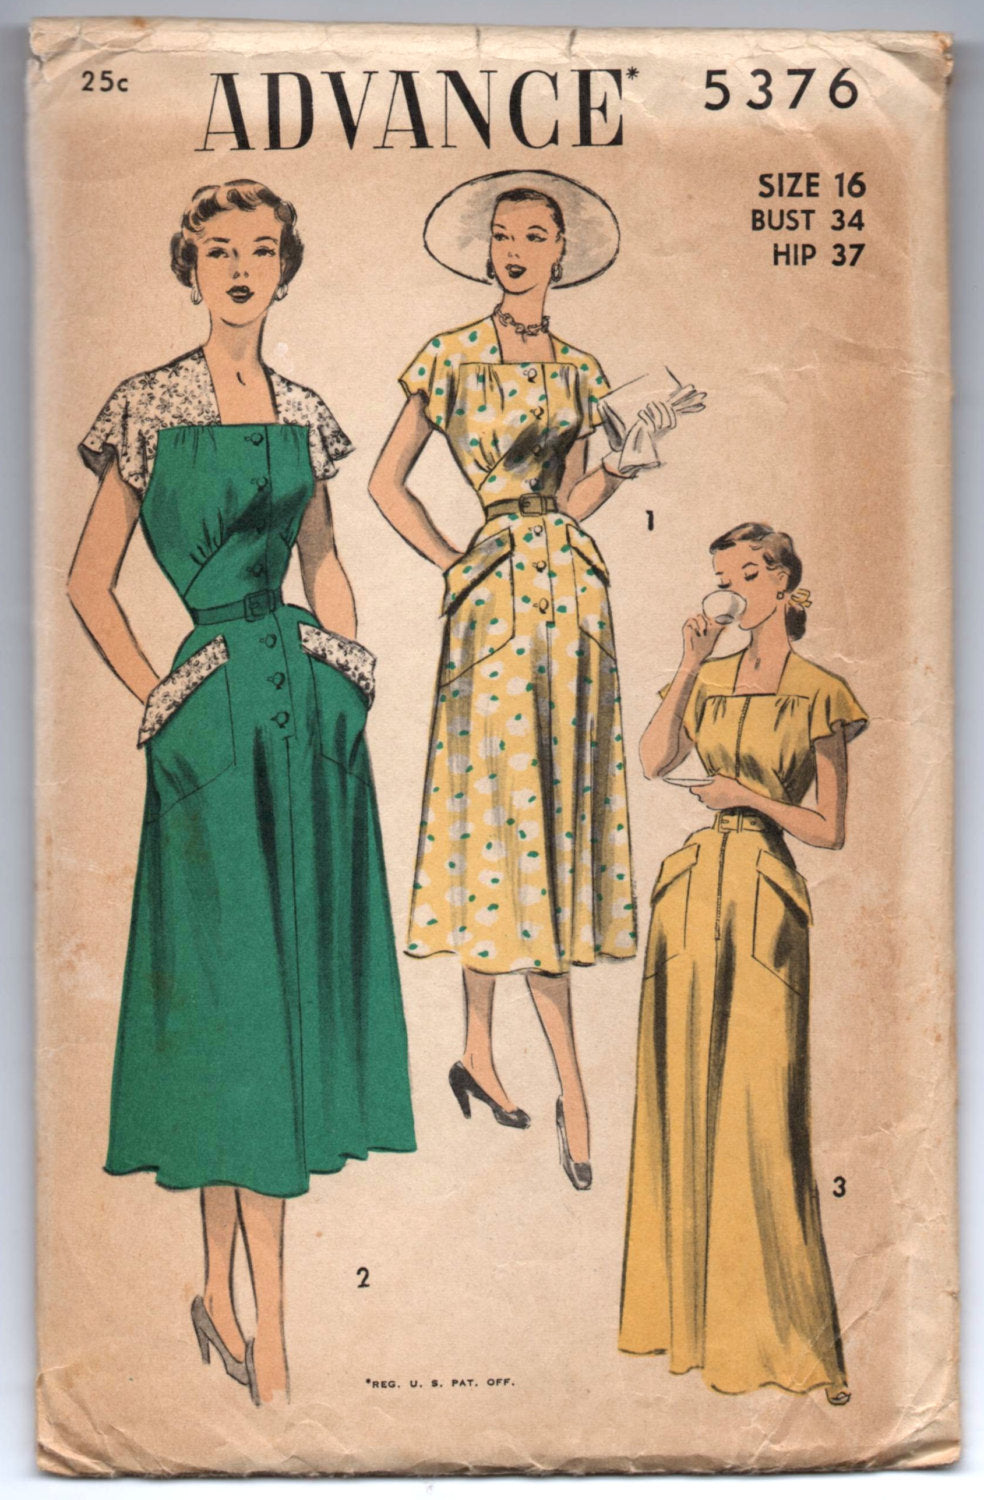 1950's Advance Day Dress, House Coat, Lace Sleeve Afternoon Dress Pattern - Bust 34